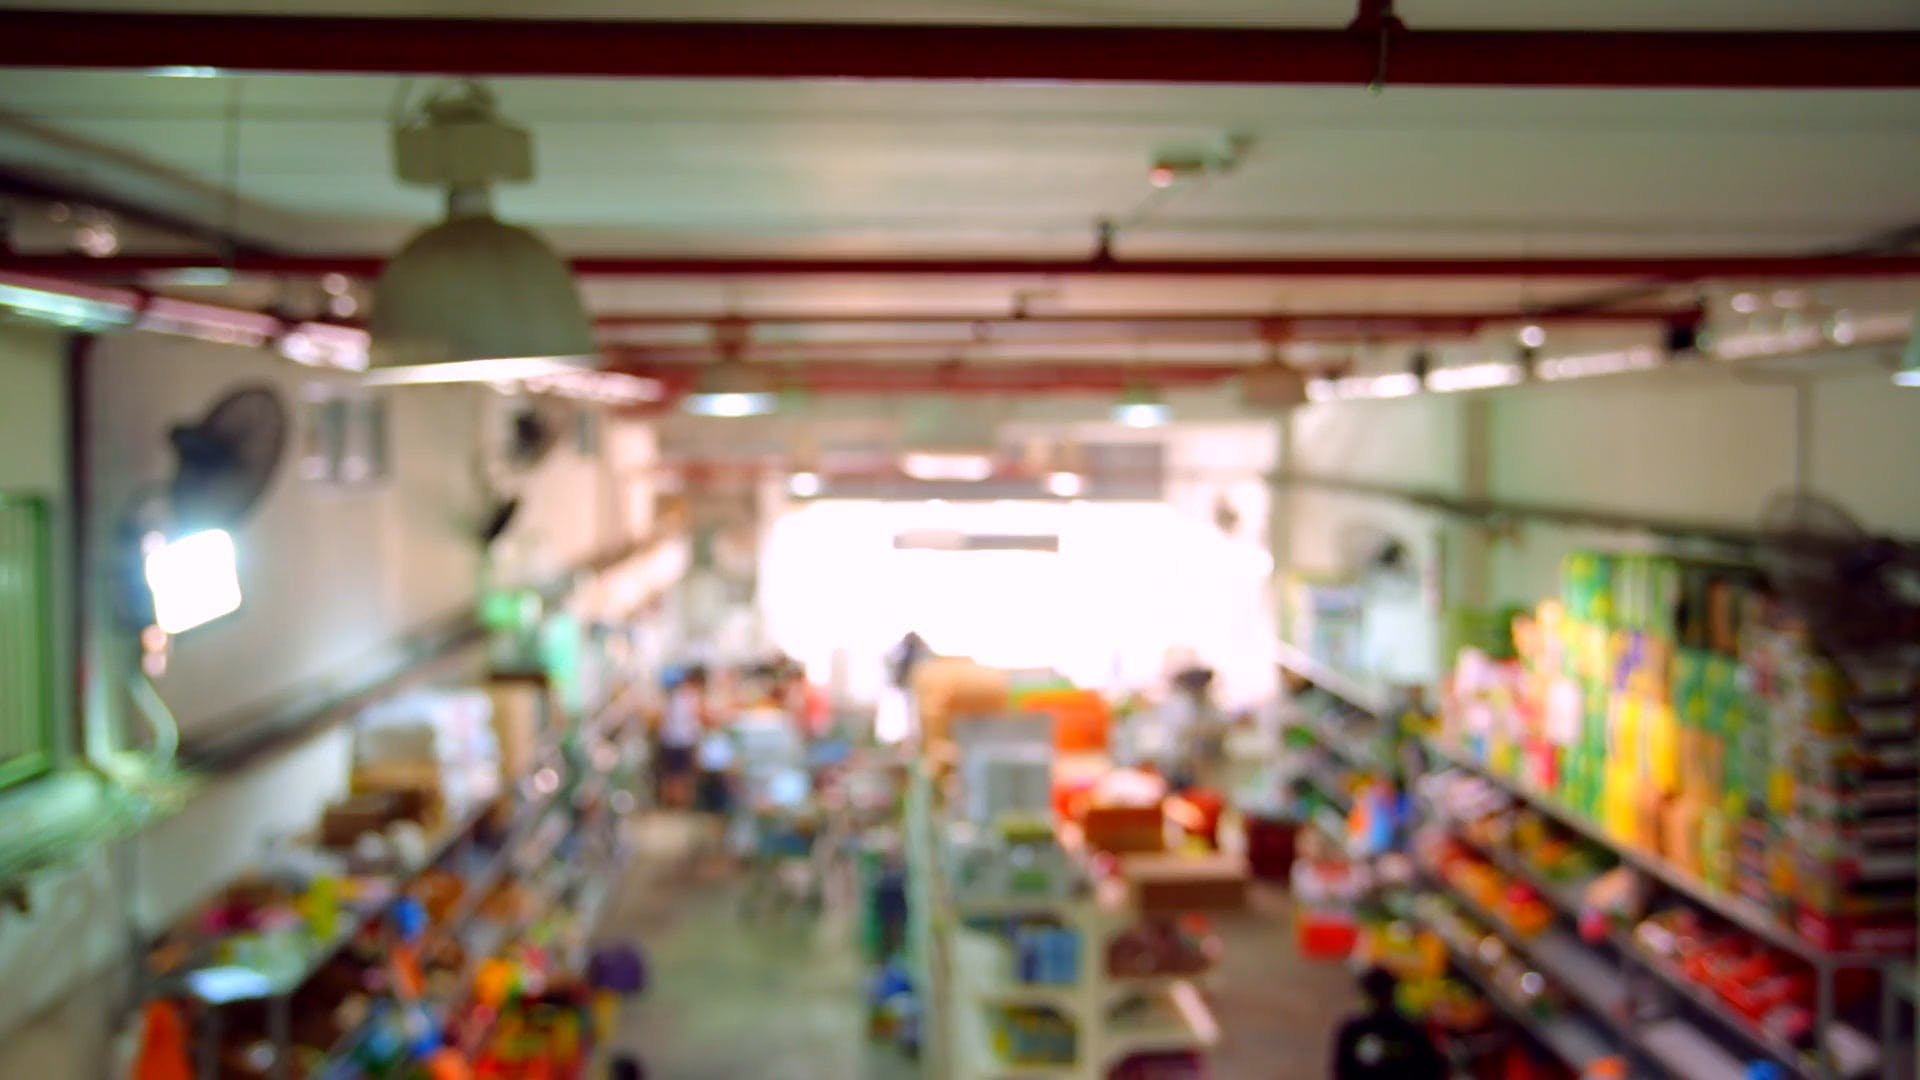 Blurry Footage of People Inside a Grocery Store